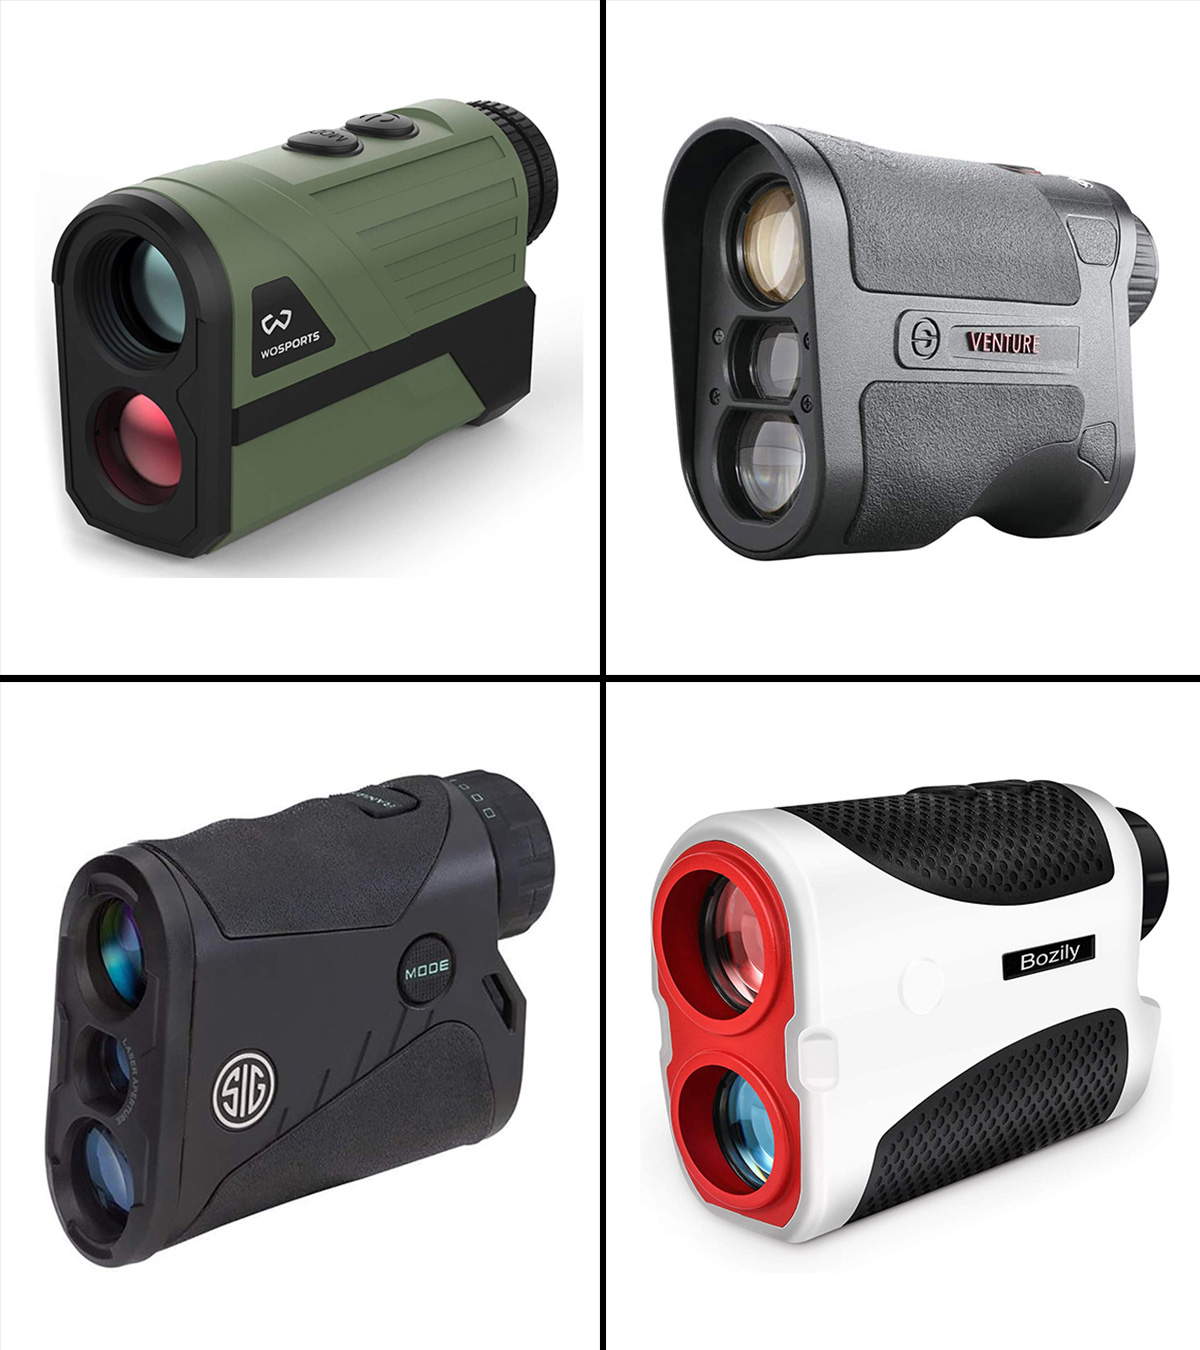 Golf Range Finders Take the Guesswork Out of Your Game